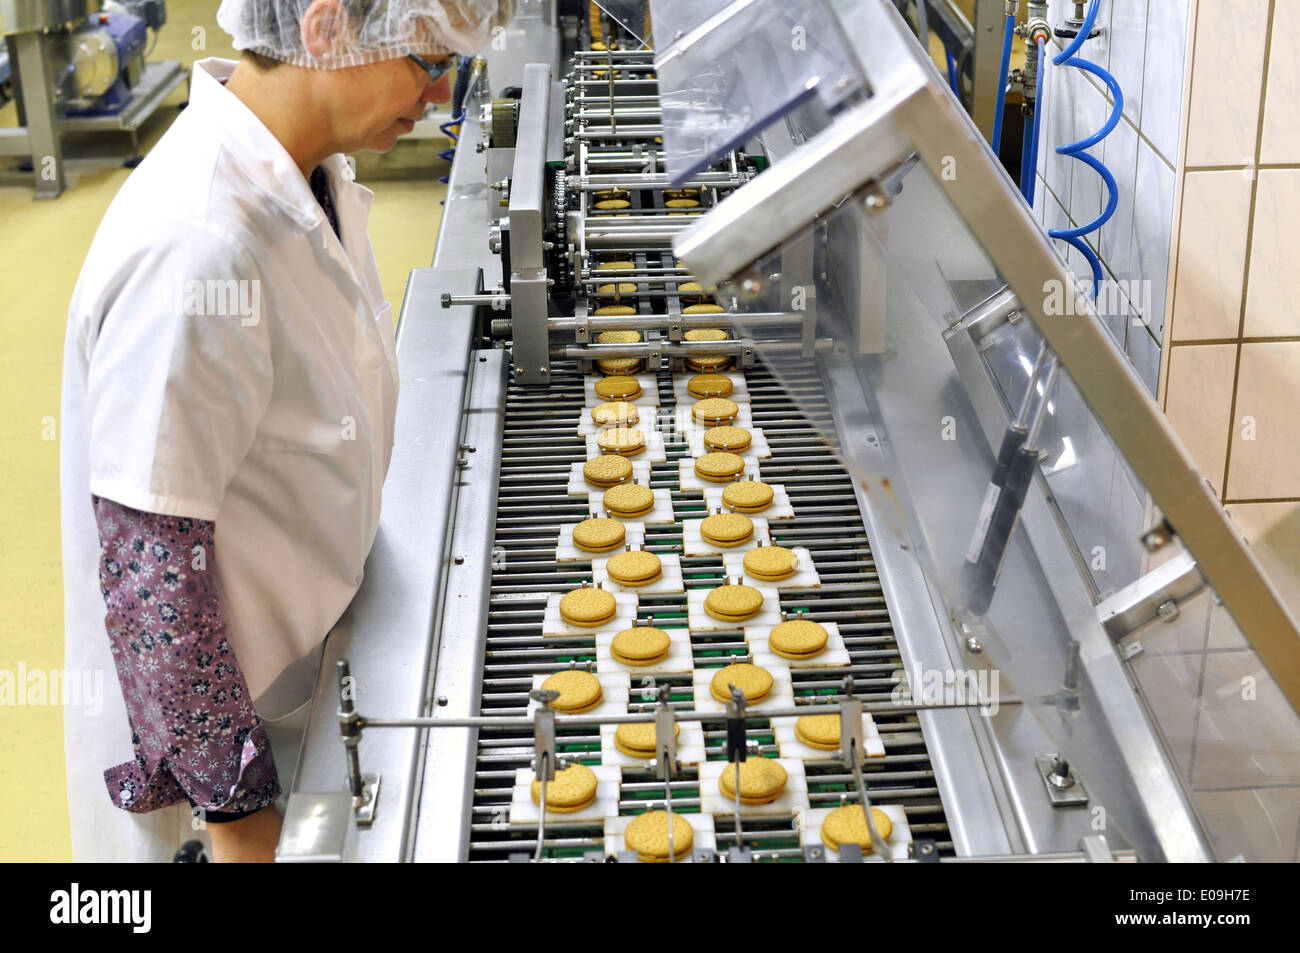 germany food industry cookie production in industrial bakery stock photo royalty free image. Black Bedroom Furniture Sets. Home Design Ideas